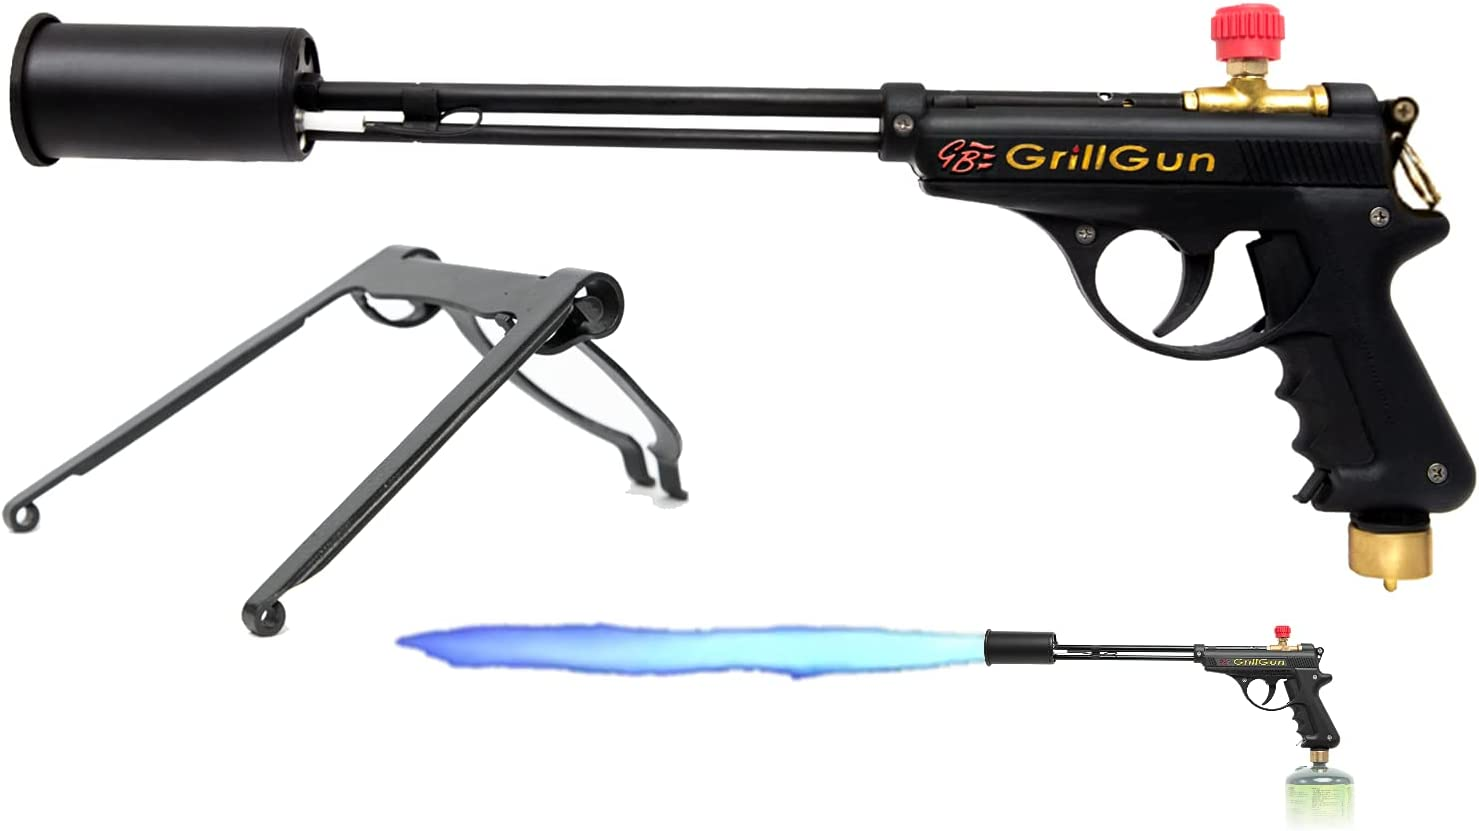 grillblazer GrillGun Basic Grill Torch & Lighter - Charcoal and Wood Starter - Professional Grilling and BBQ Handheld Blowtorch for Chefs, Men and Women Who Want to Have The Best Tool for The Job